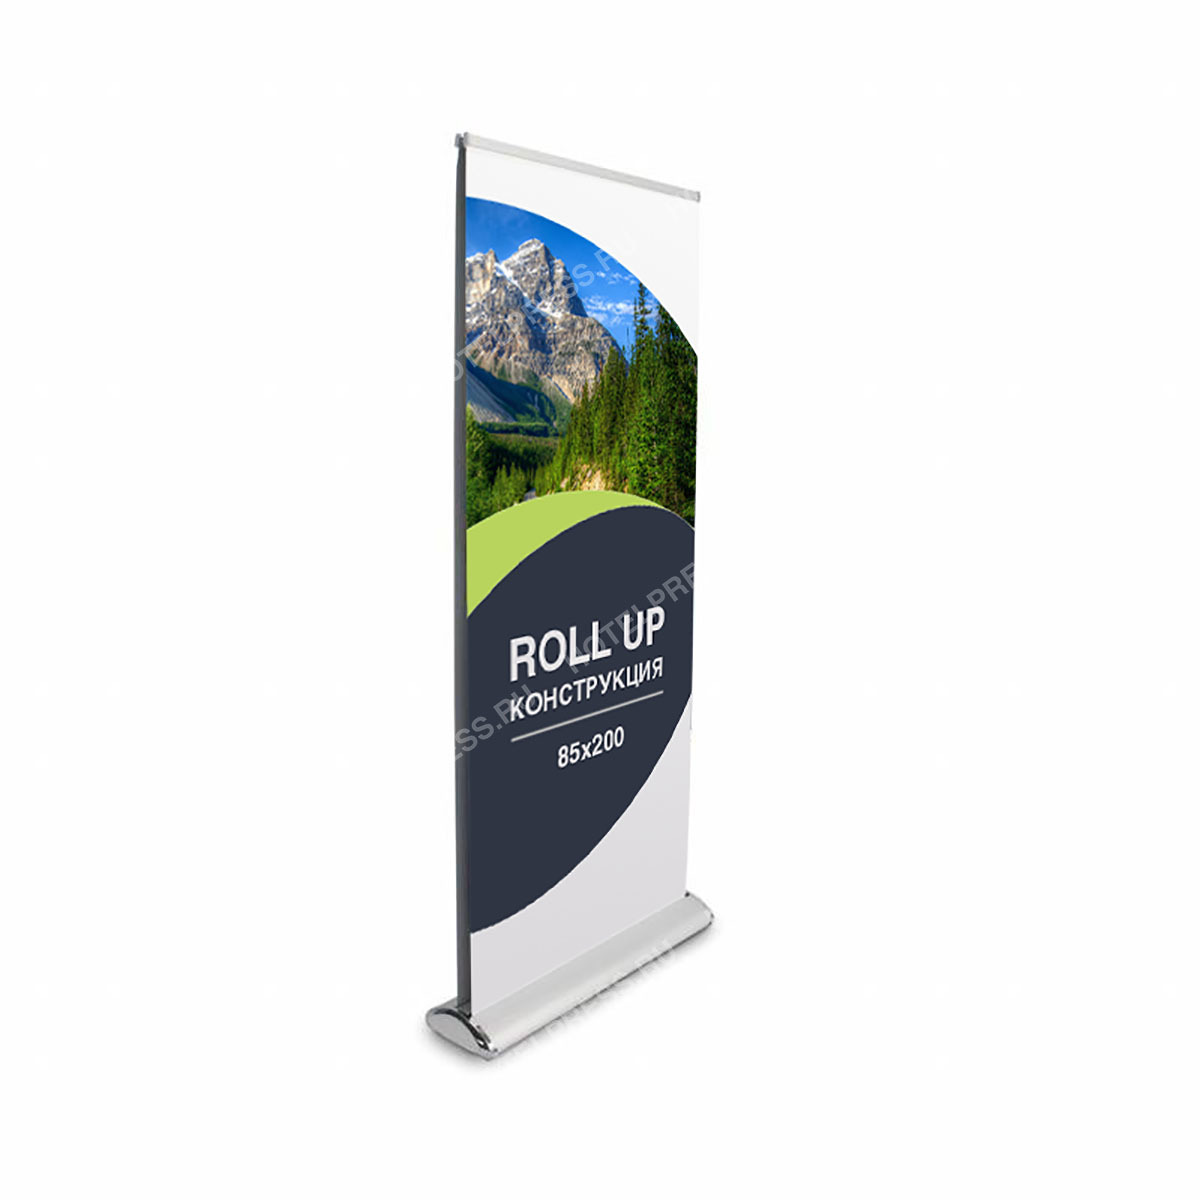 Roll up double sided deluxe